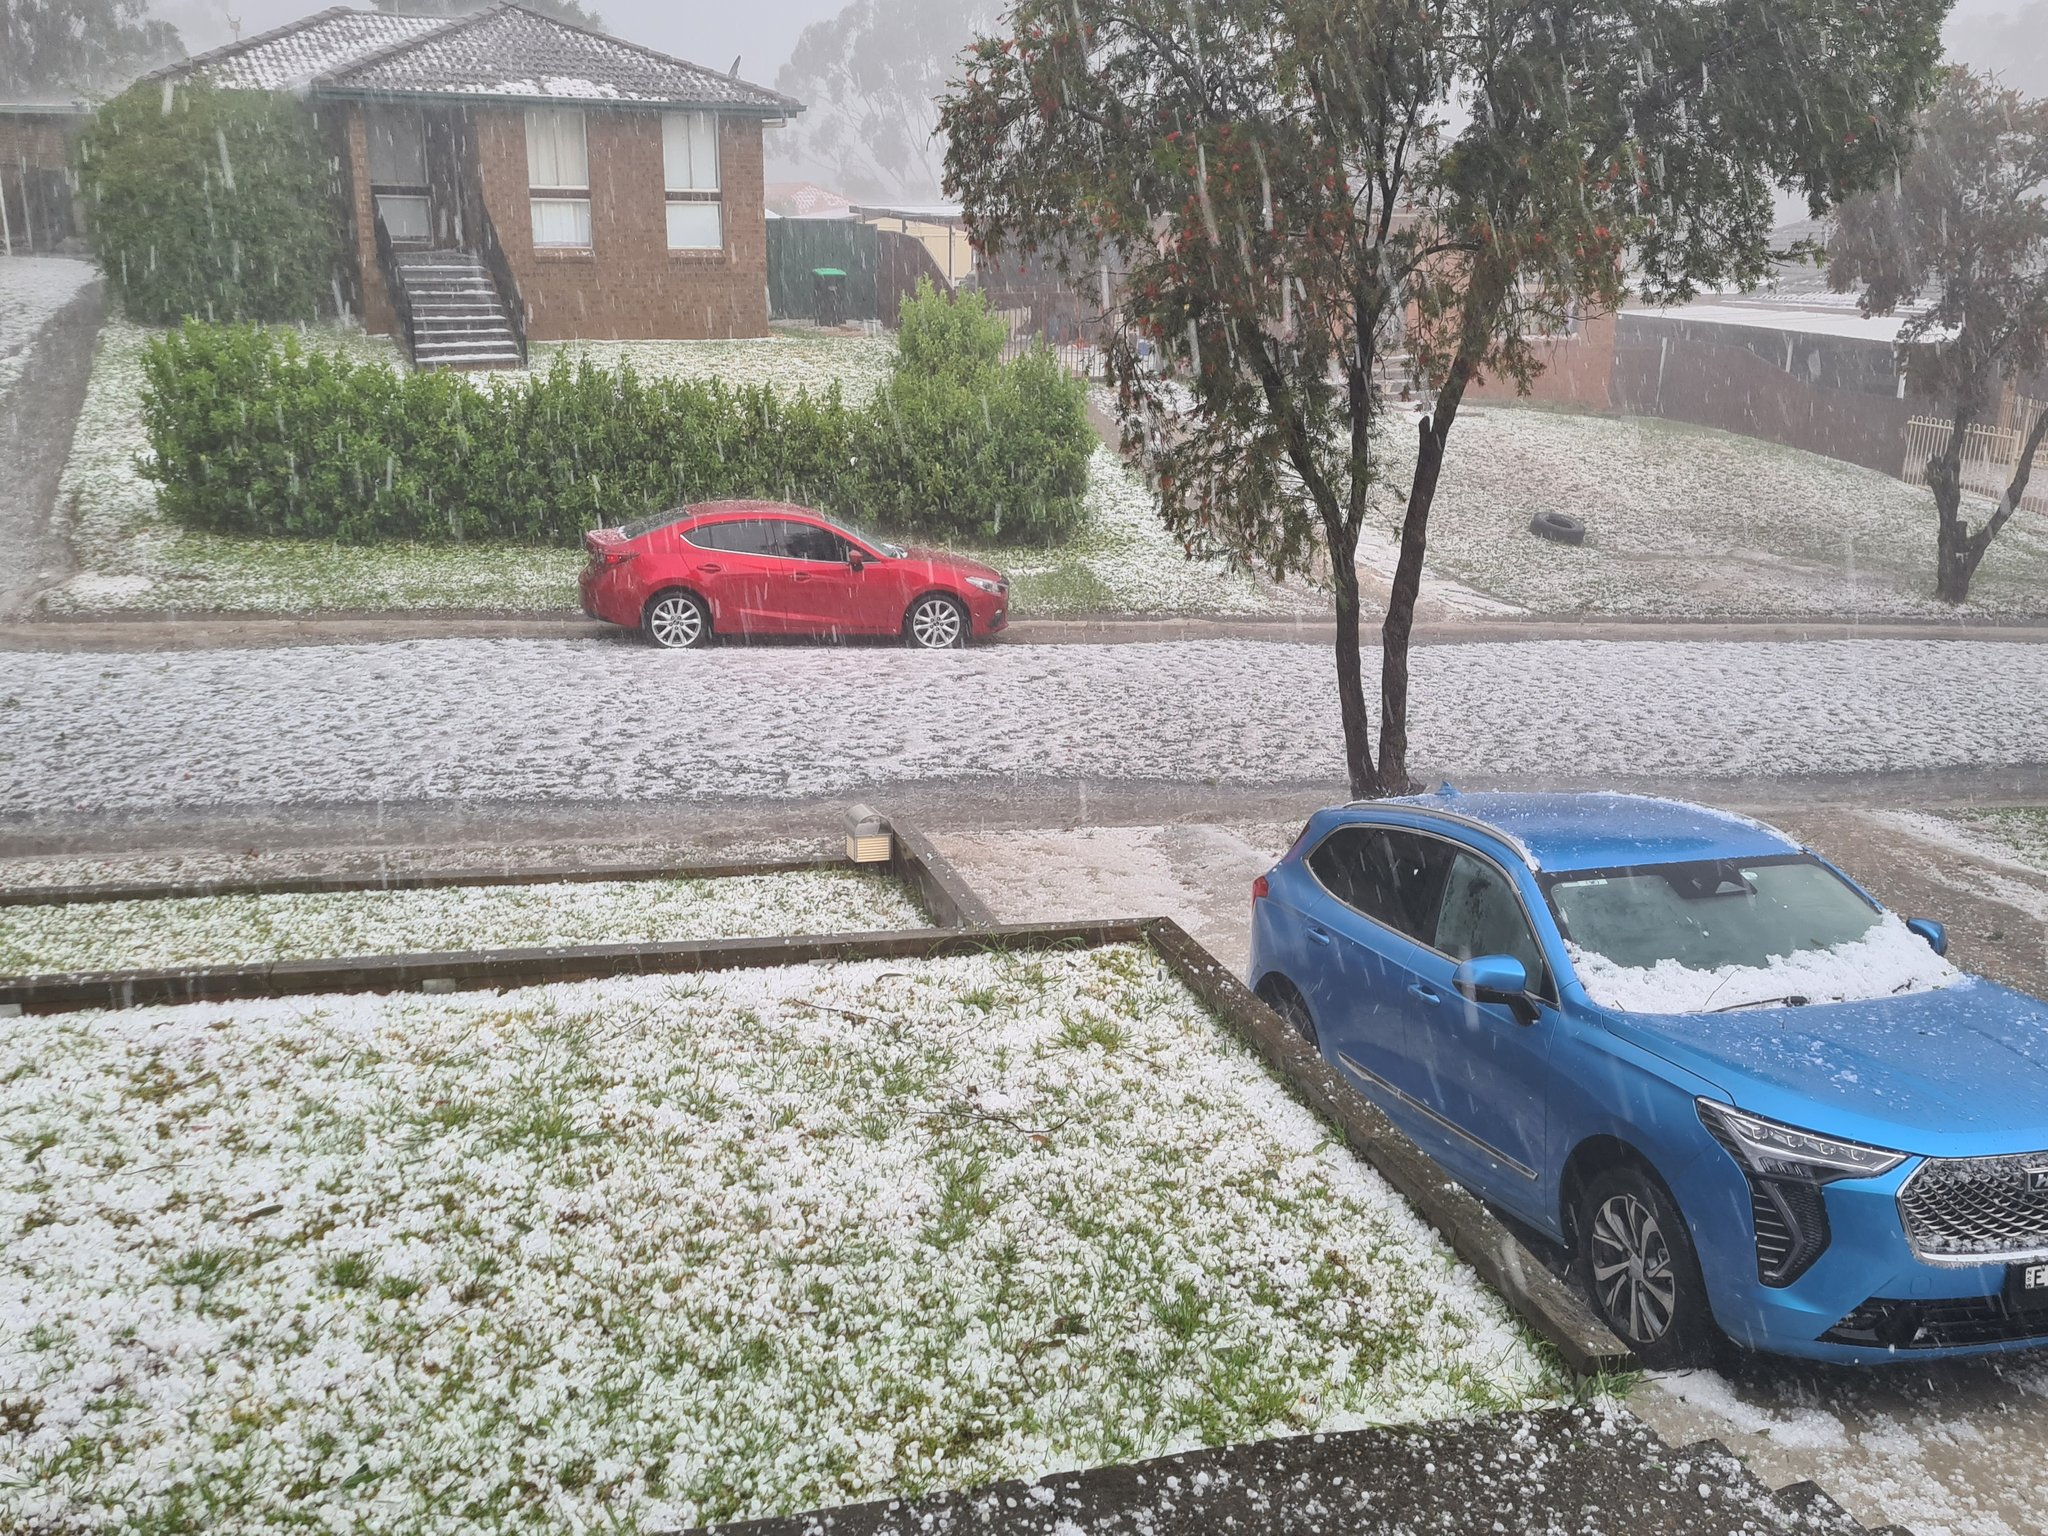 Parts of NSW have been blanketed white in hail.